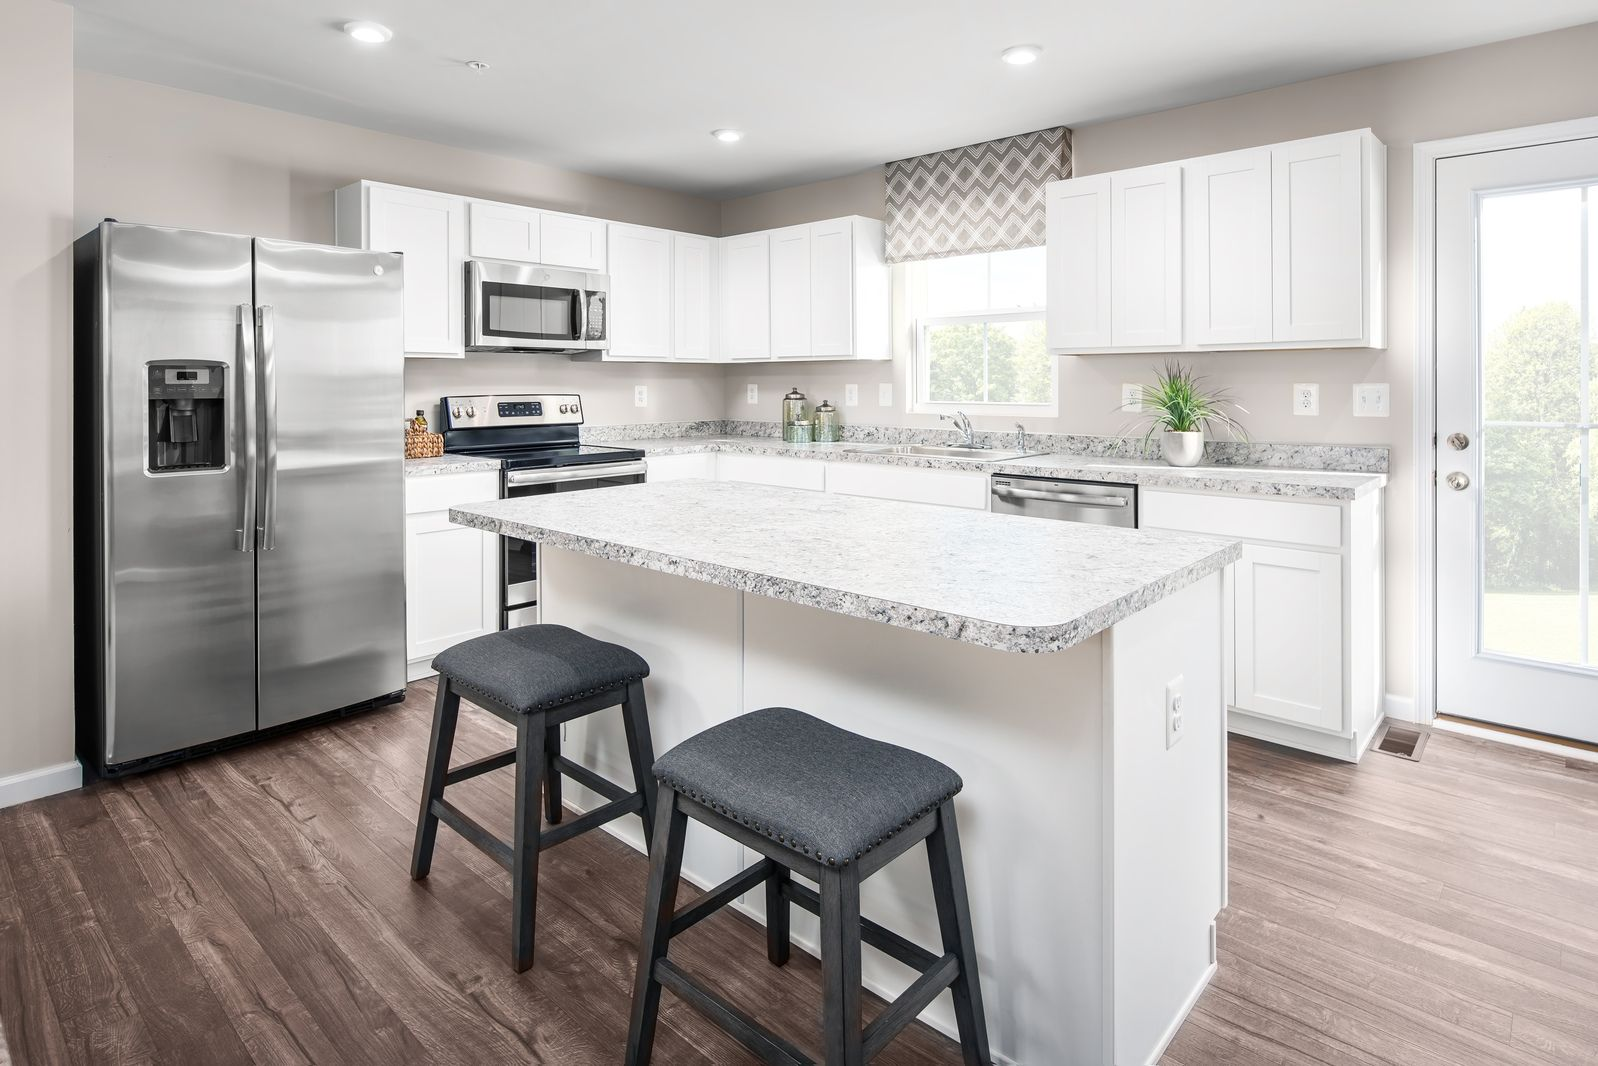 Camden Creek: New Homes in Danville:Small town charm in an ideal location, with amenities, Danville Schools & all appliances included, from the low $200s.Schedule your visit to learn more about owning at Camden Creek!